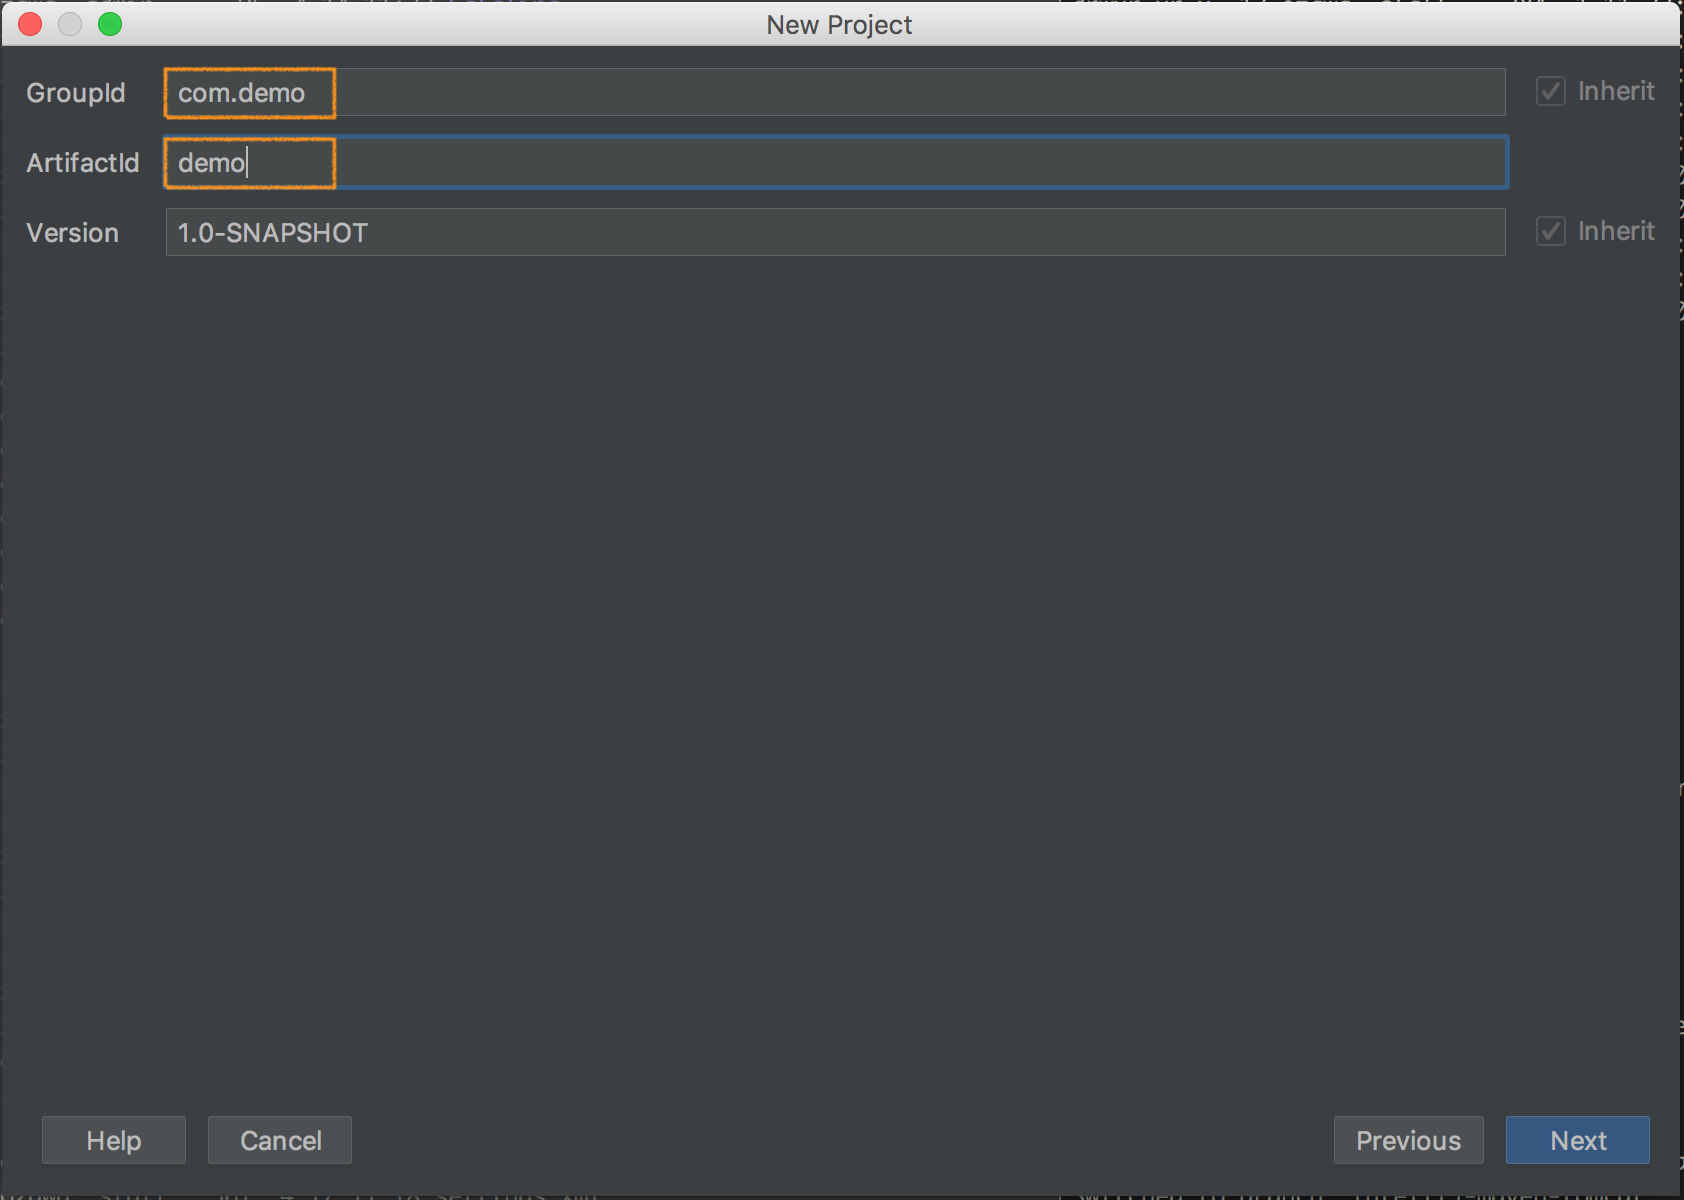 02_intellij_new_project.png